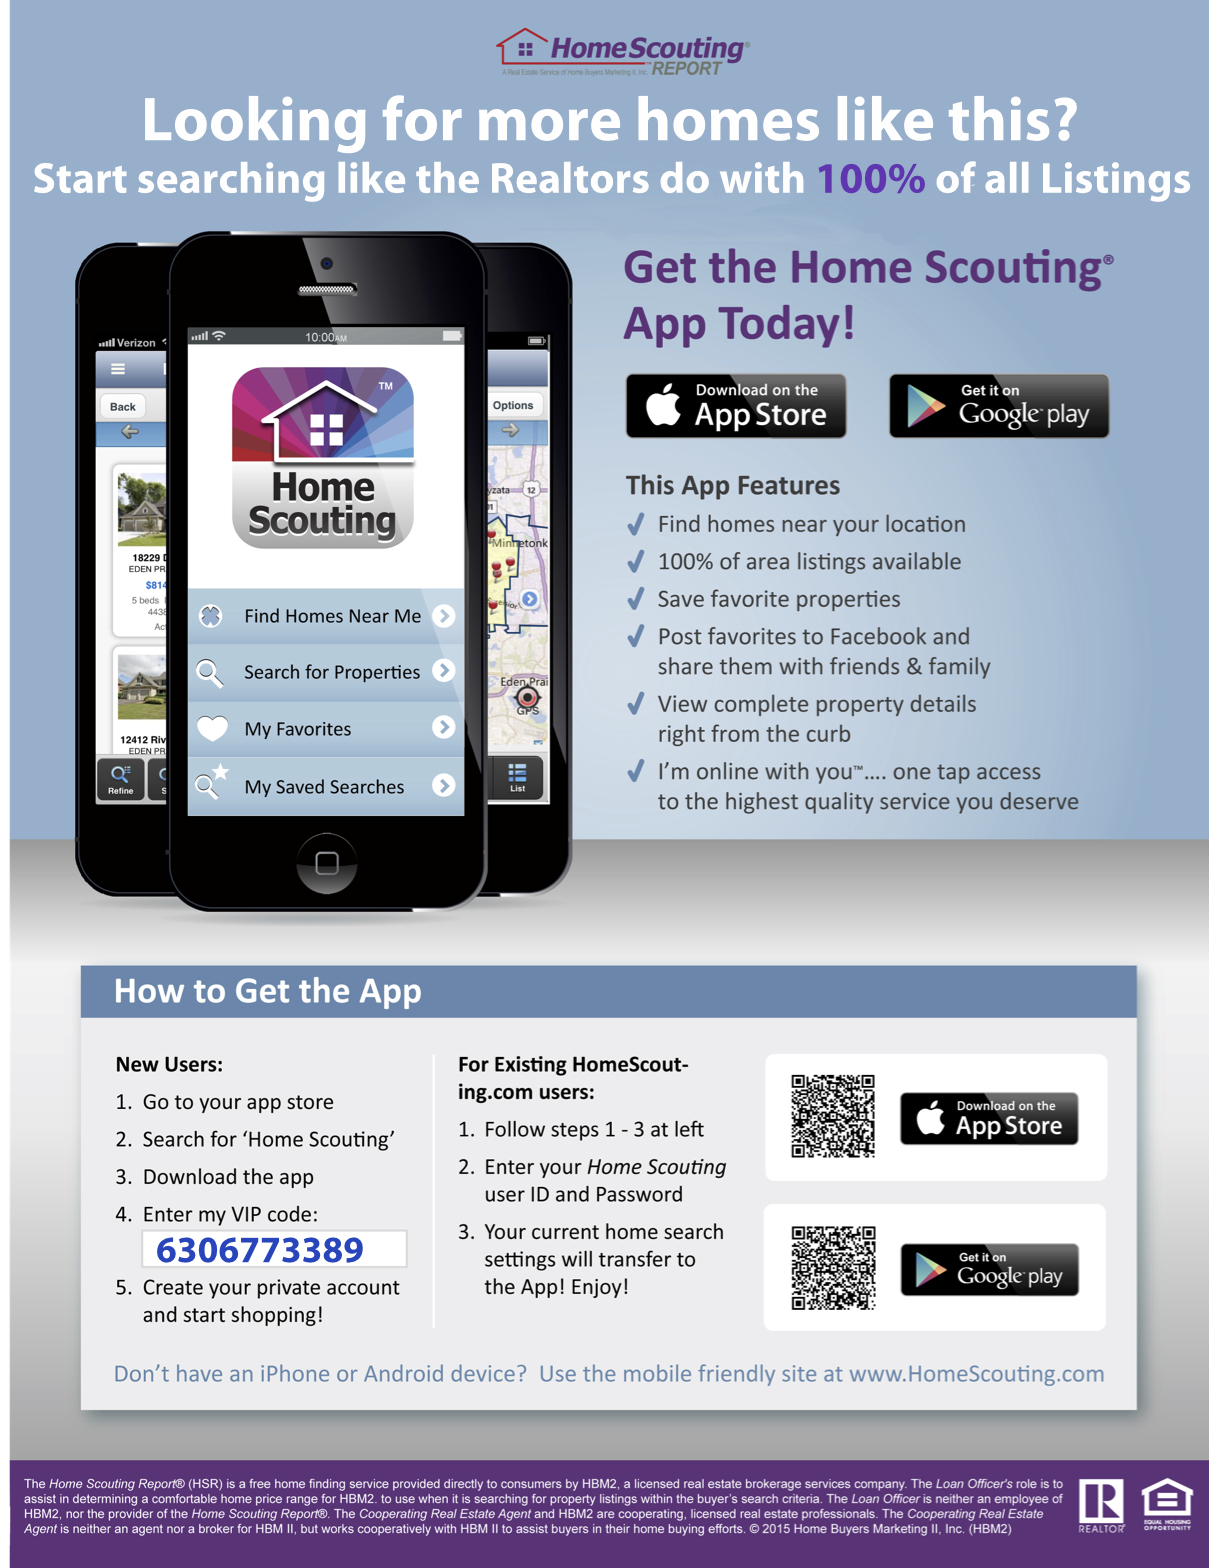 Have You Tried Home Scouting Yet?